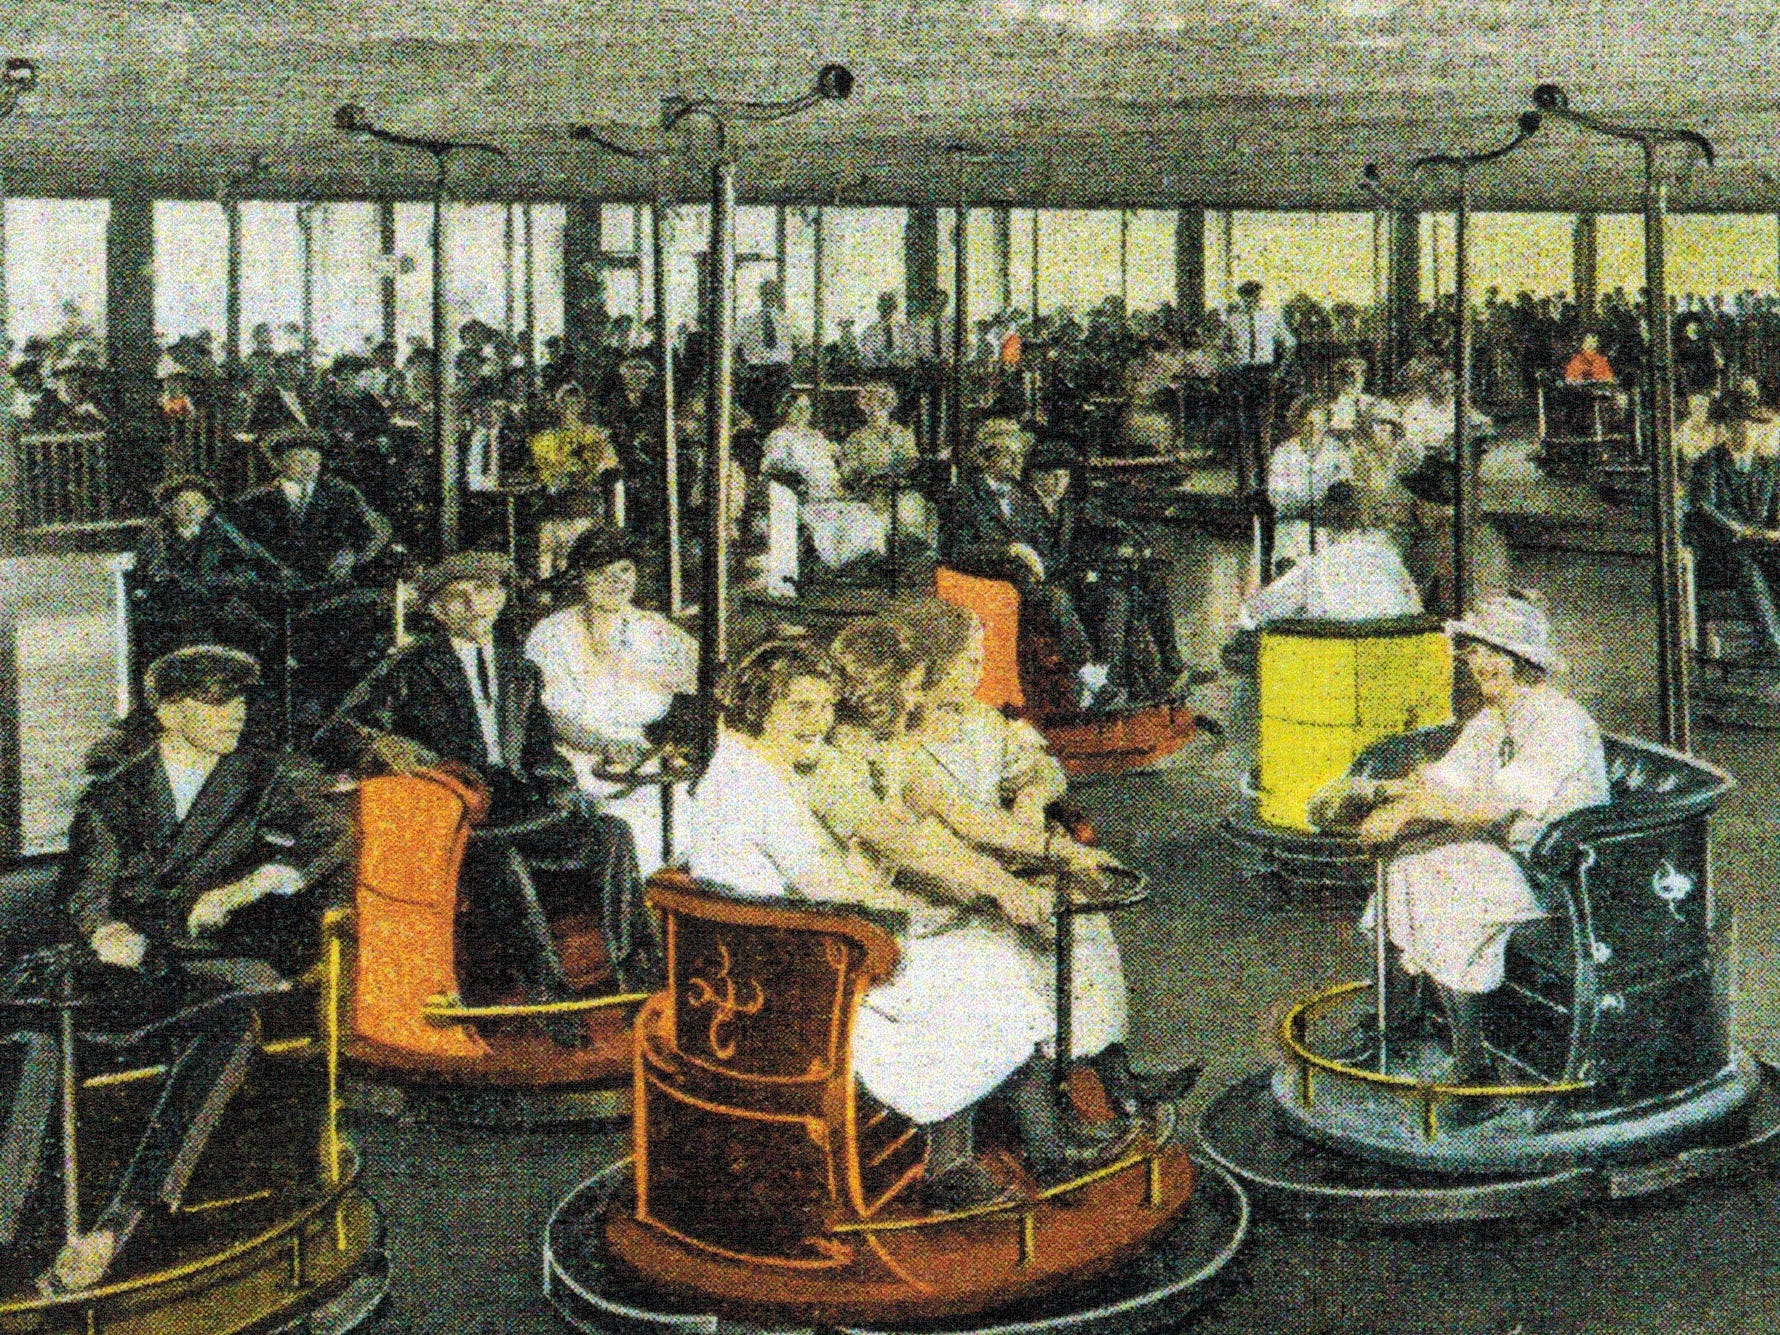 The bumper cars that we know today can be traced back about 100 years ago to the Dodgem Corp. in Lawrence, Massachusetts.